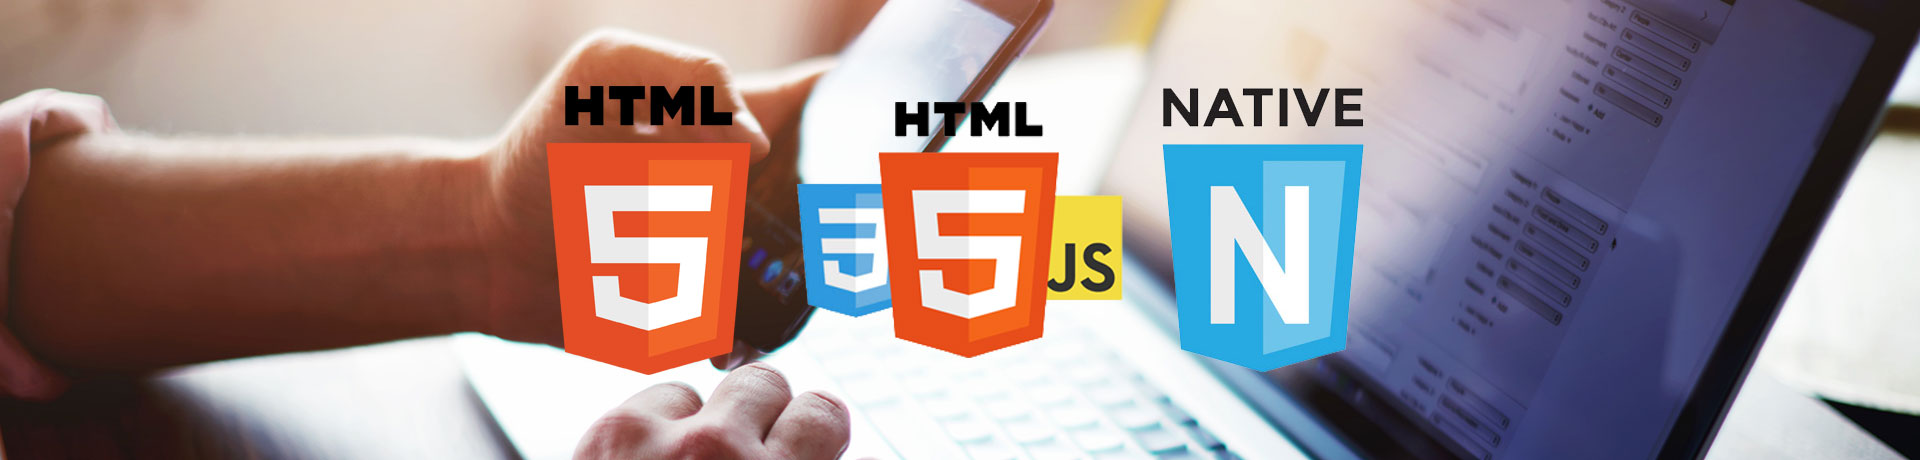 Native, Html5 or Hybrid